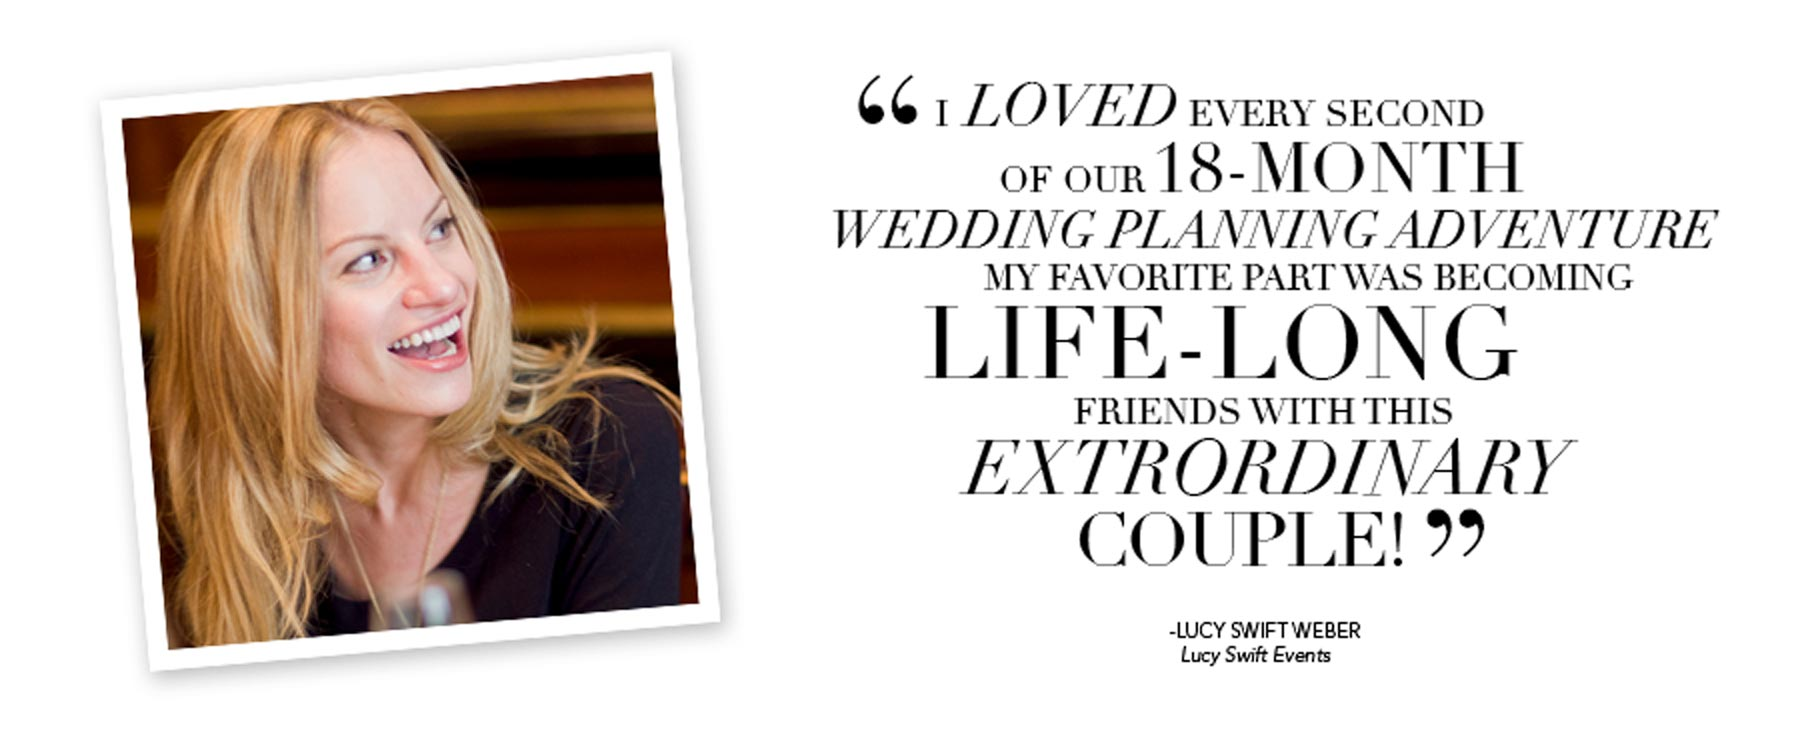 I loved every second of our 18-month wedding-planning adventure. My favorite part was becoming lifelong friends with this extraordinary couple! - Lucy Swift Weber Youdovin, Lucy Swift Events